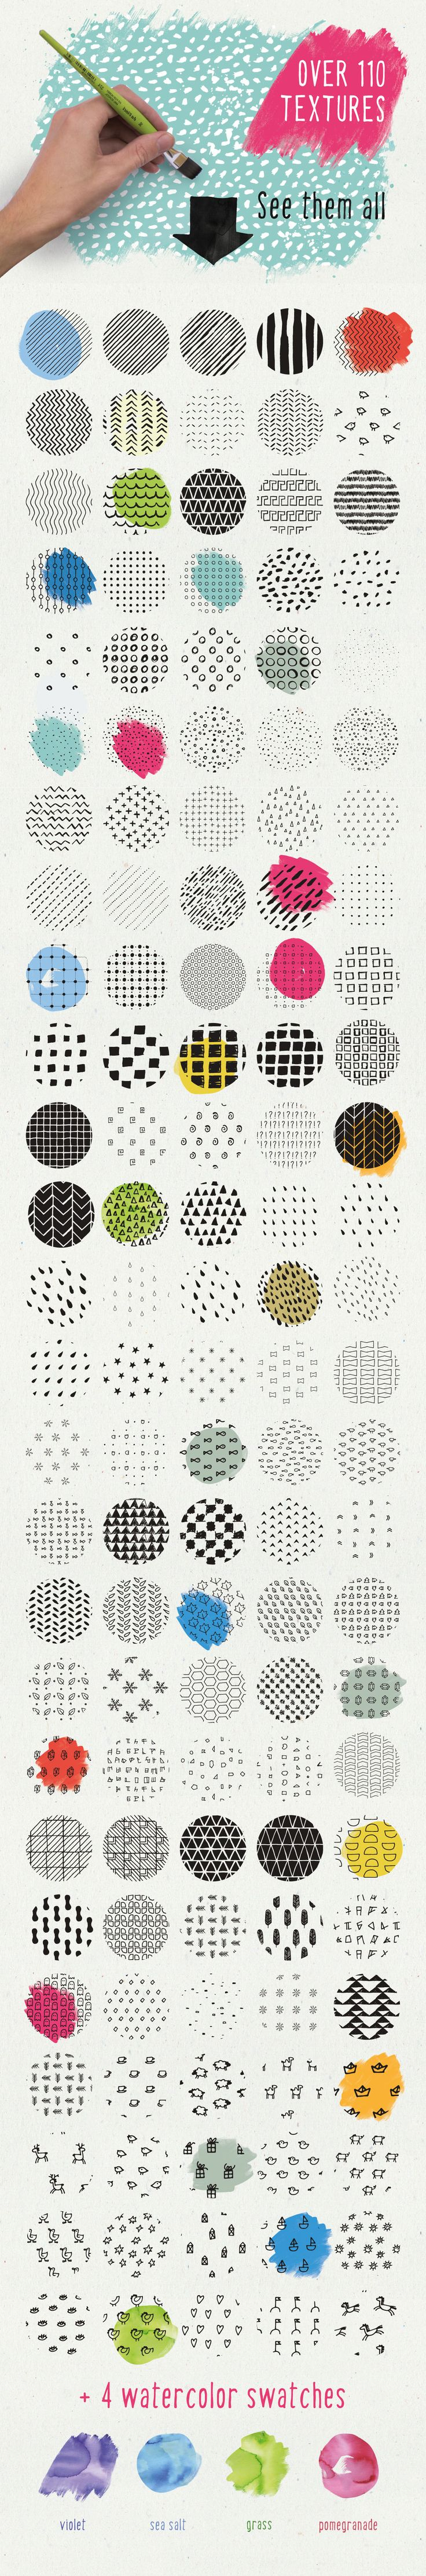 HandSketched Seamless Pattern Pack by Vítek Prchal on @creativemarket                                                                                                                                                     More